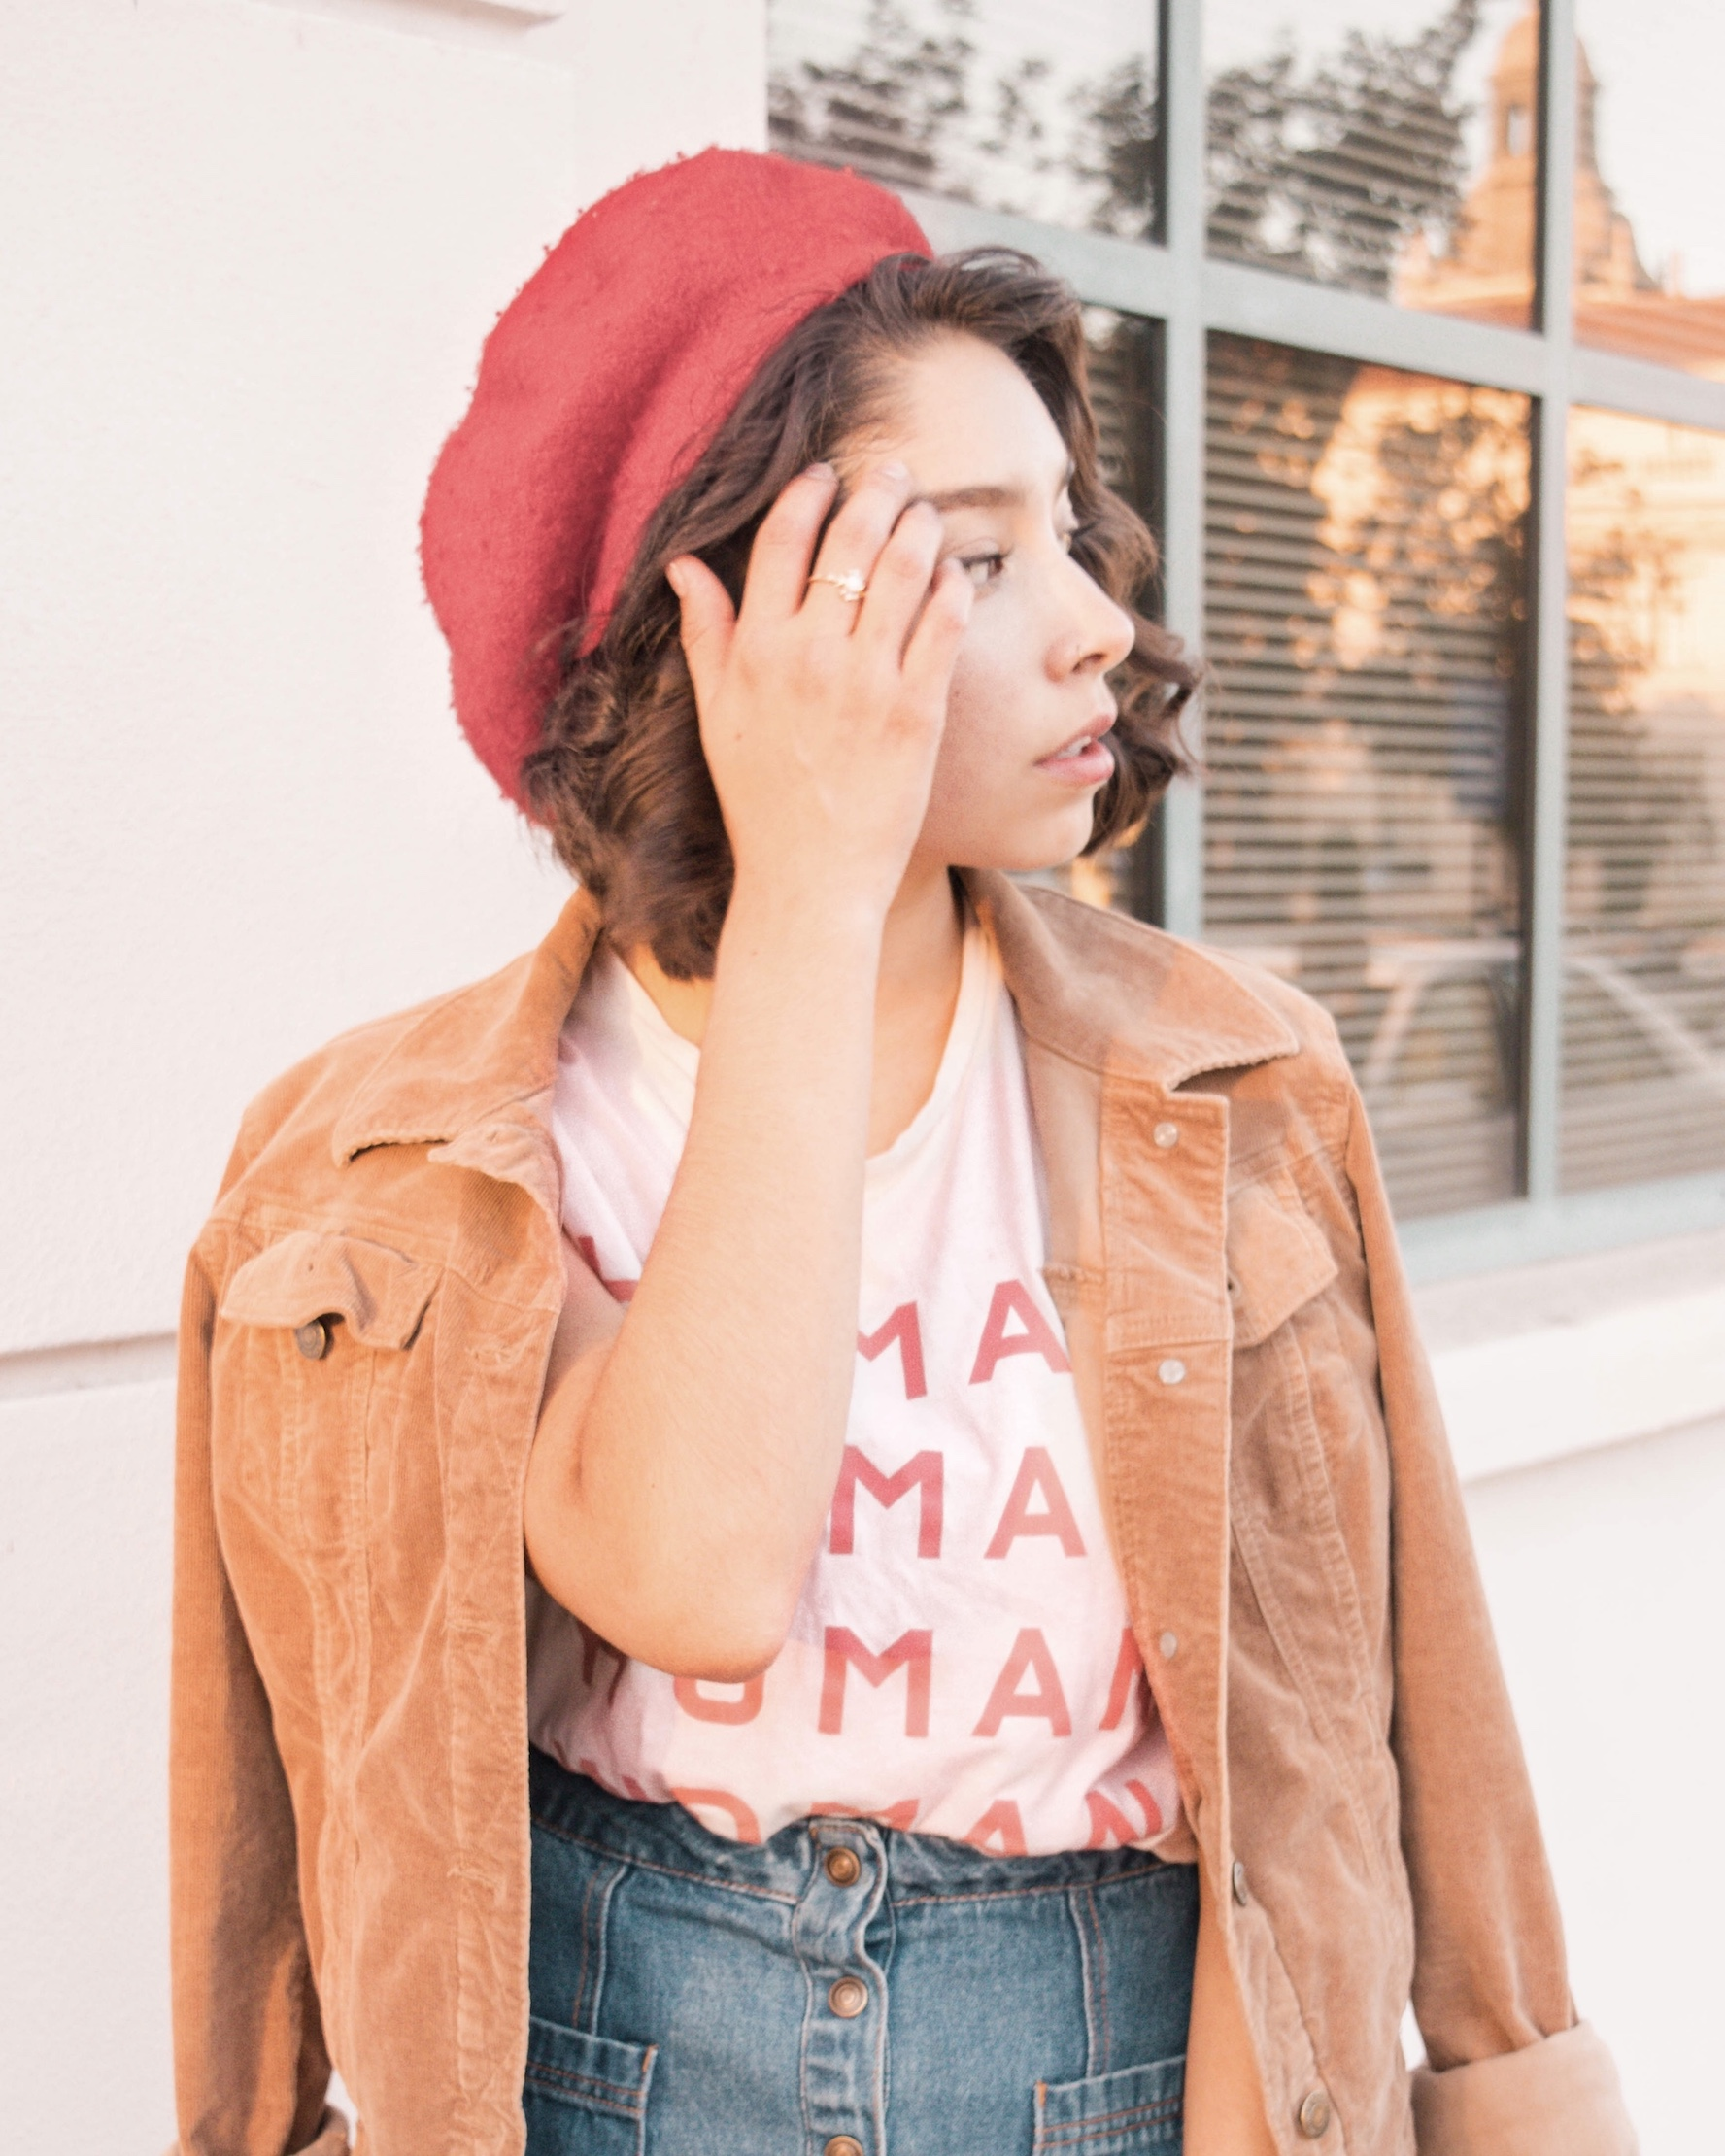 Everlane human woman tee outfit inspo // A Week Of Self-Expressive Outfits With Aja Duran From Aja With Love on The Good Trade